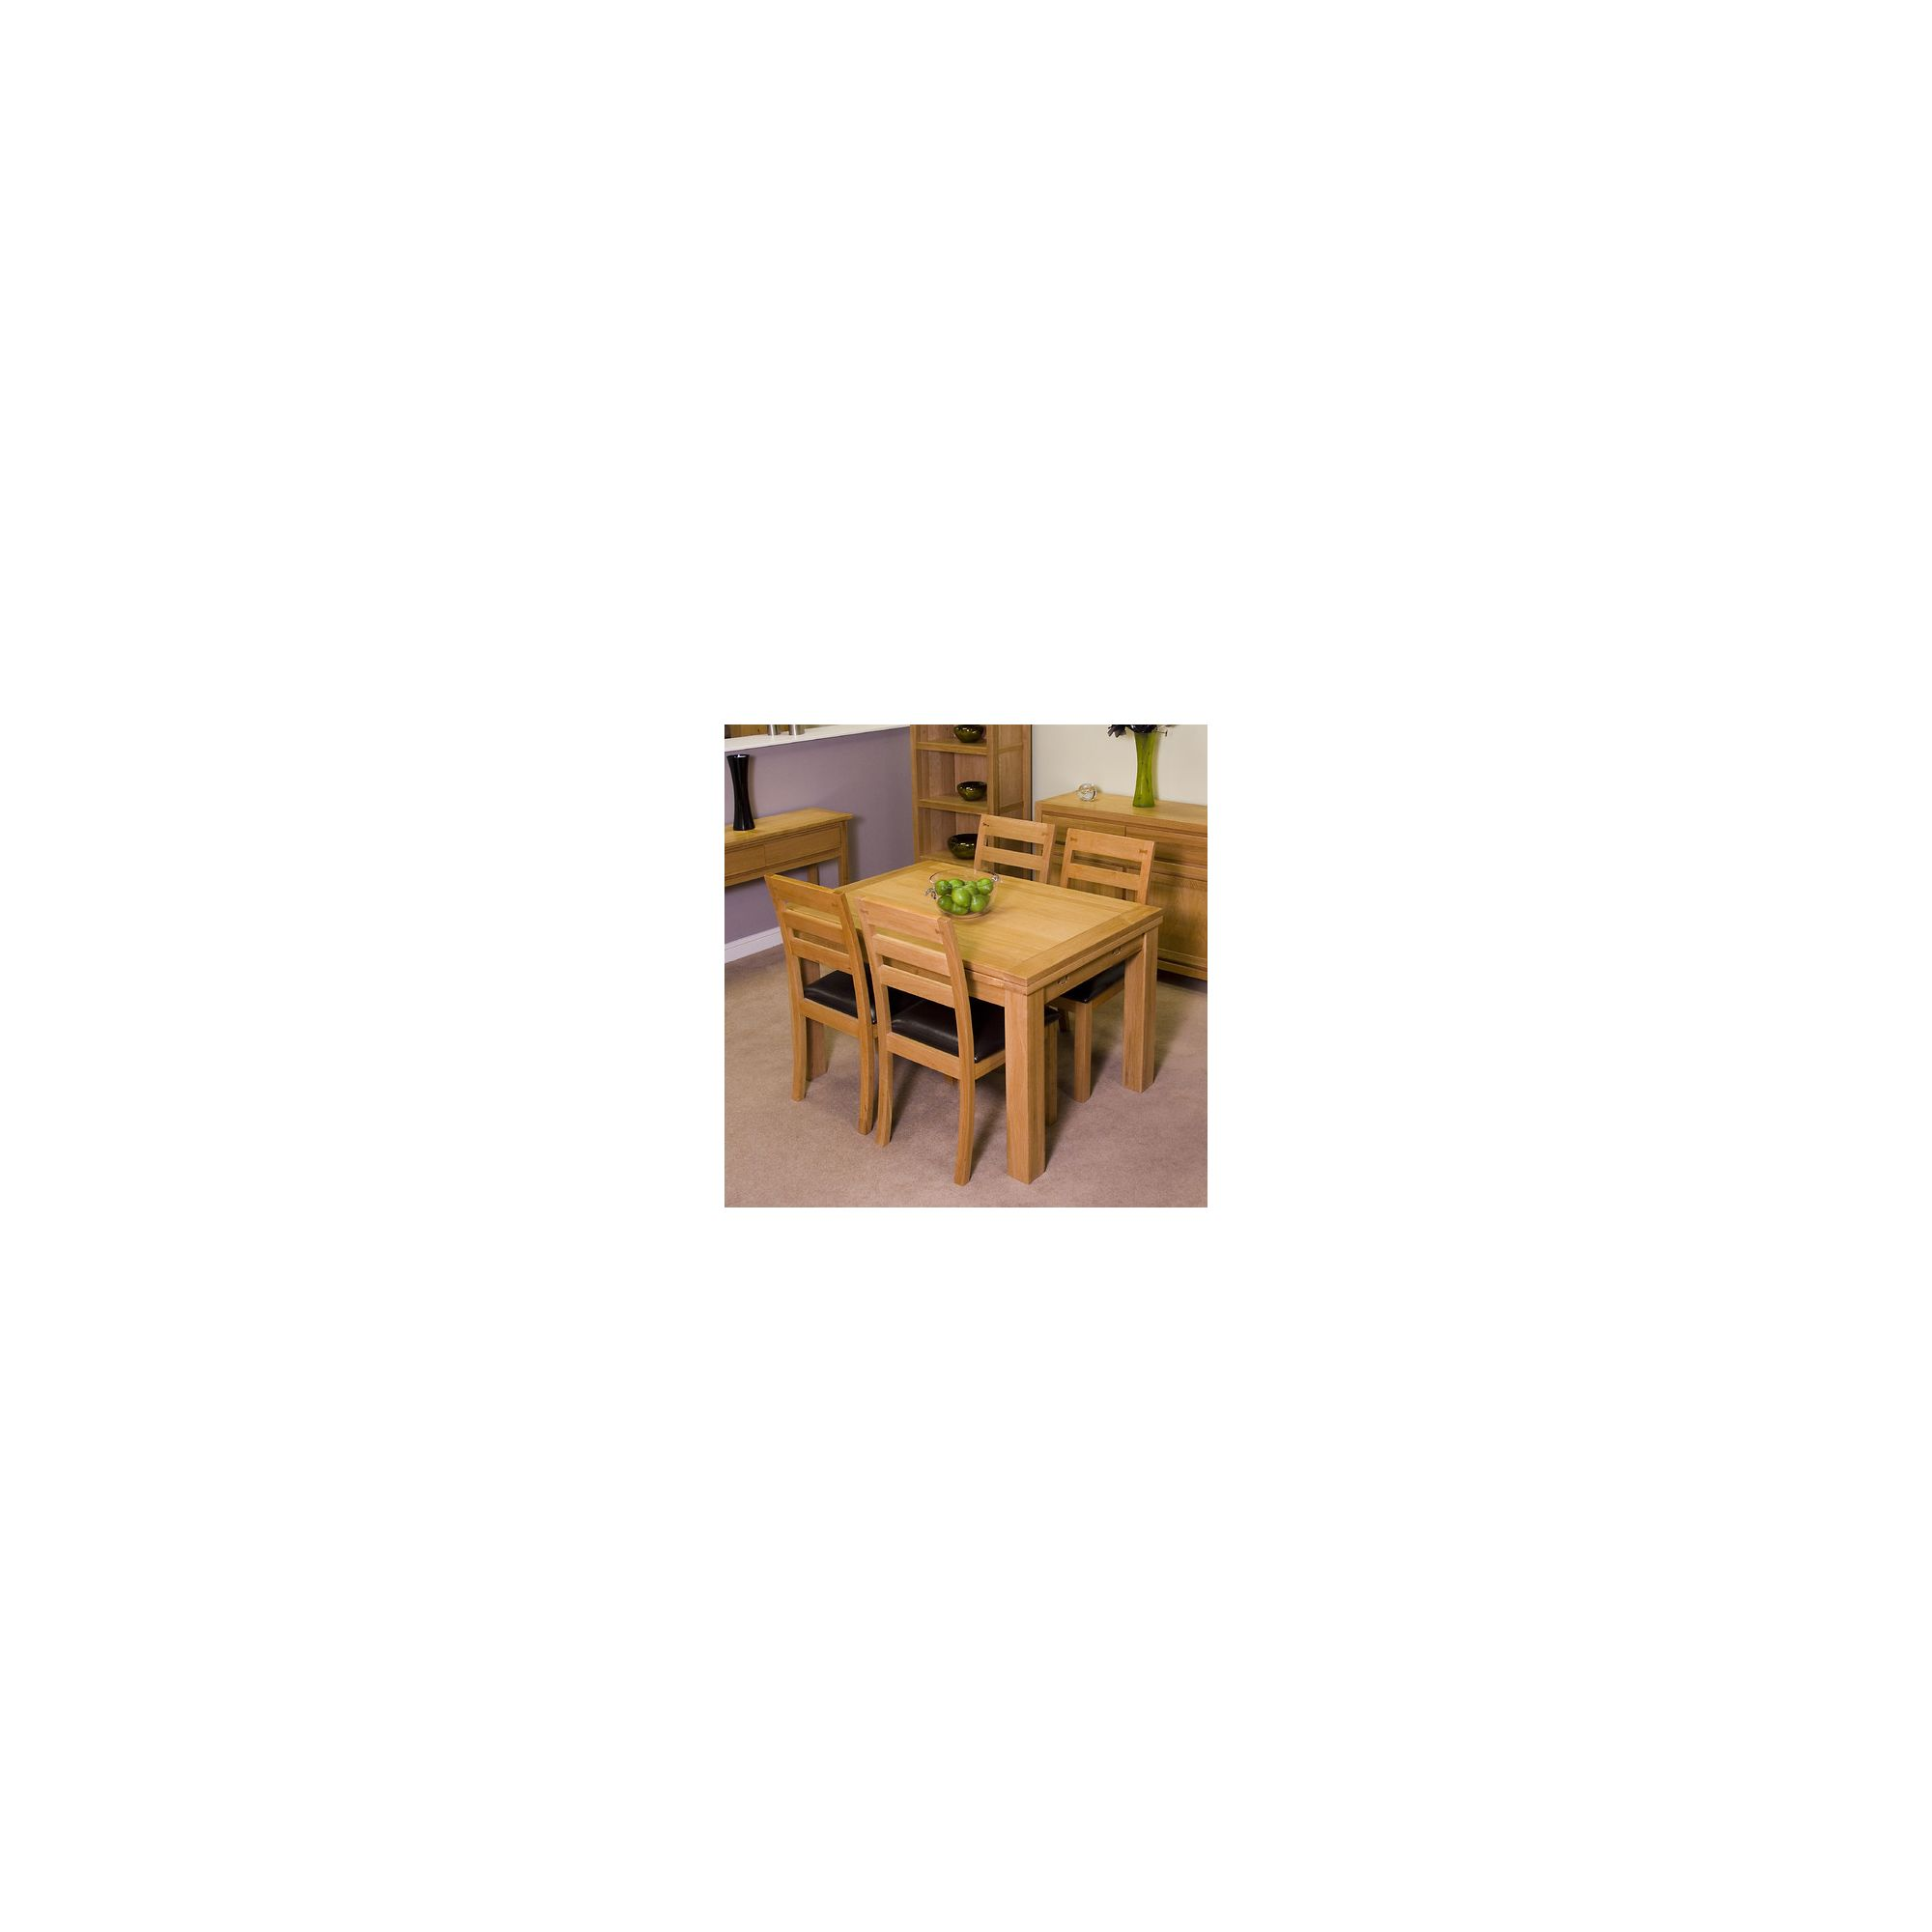 G&P Furniture Somerset Square Extending Draw-Leaf 5 Piece Dining Set at Tesco Direct